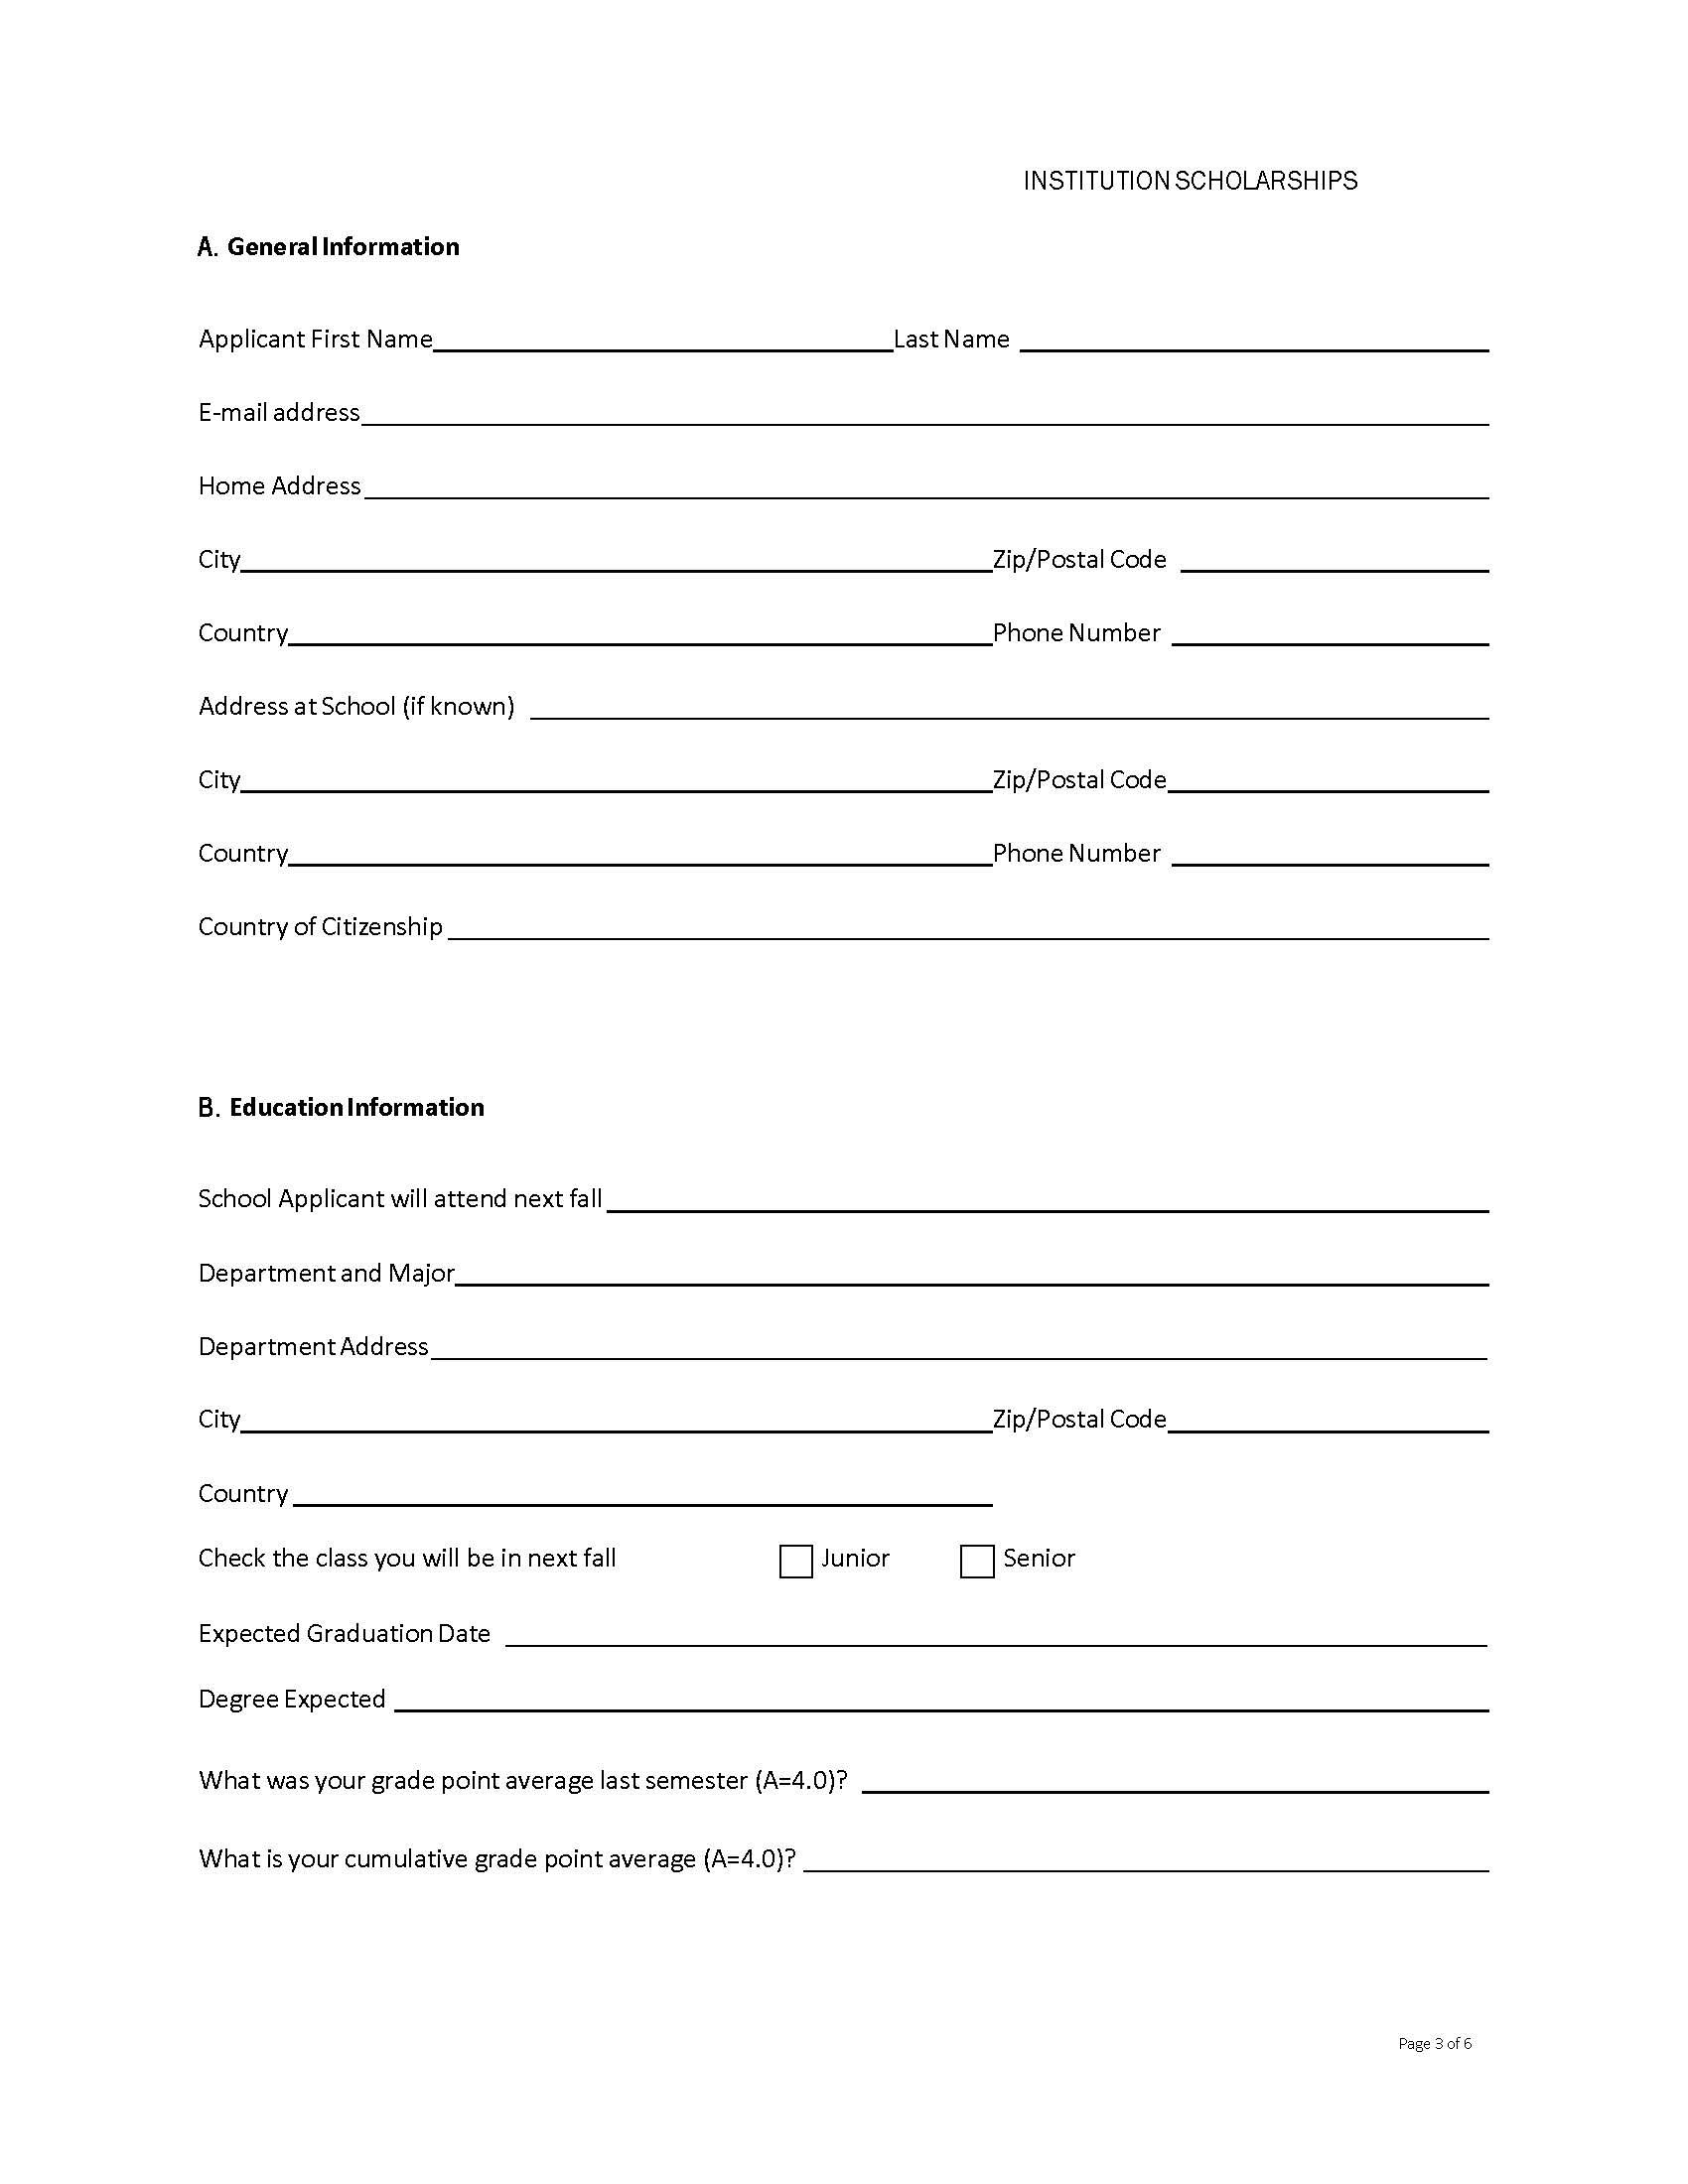 Free Application form scholarship for Universities | Templates at ...